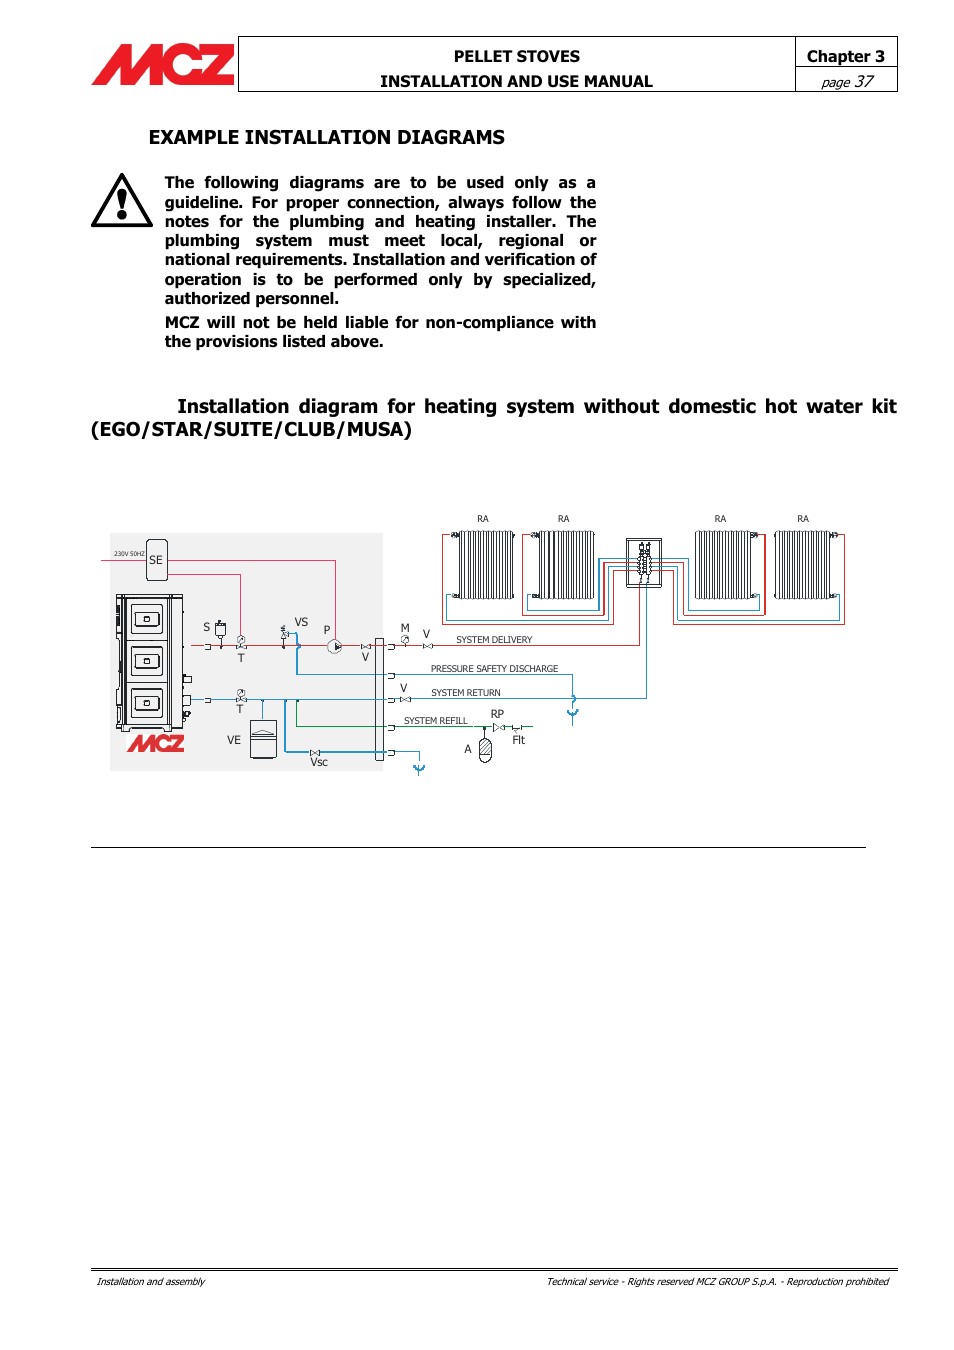 Example installation diagrams, Ego/star/suite/club/musa), Pellet stoves  chapter 3 | MCZ Club HYDRO 15 kW User Manual | Page 37 / 48